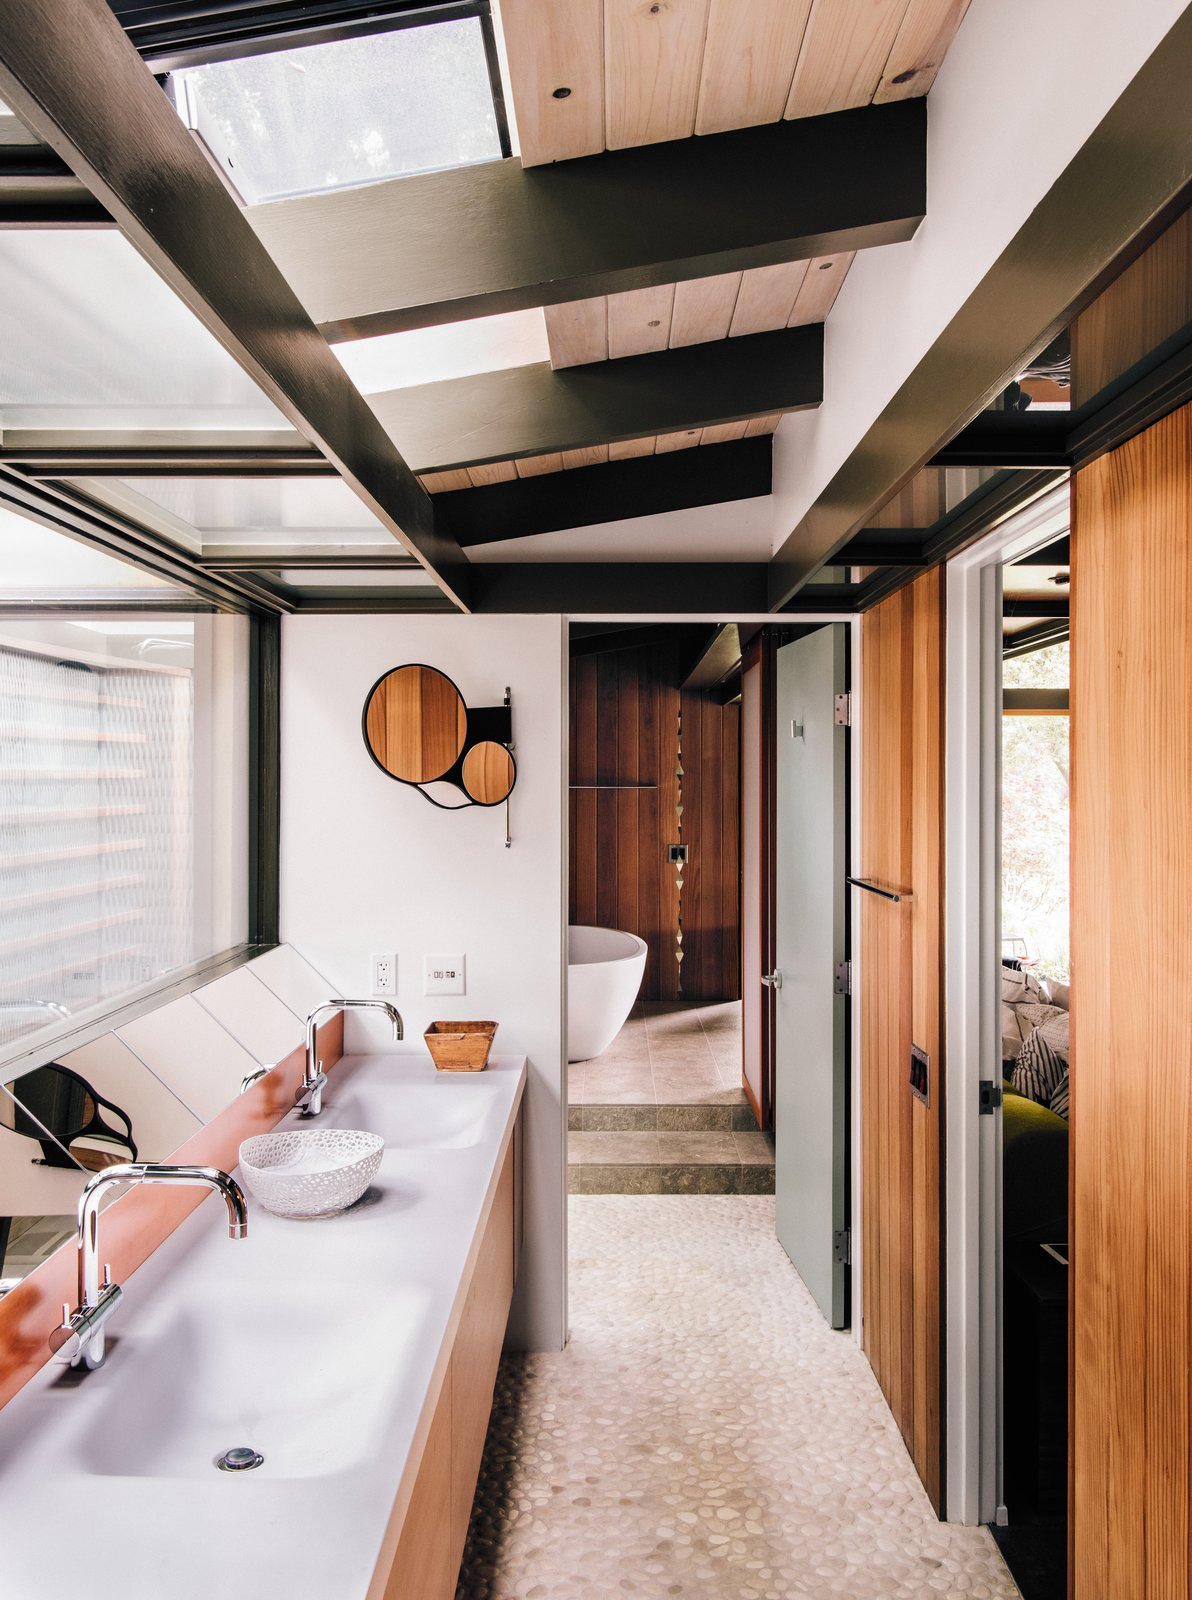 Fung + Blatt designed the master bathroom vanity, which features Agape washbasins and fixtures and an angled mirror that reflects the oak trees seen through the skylights. Tagged: Bath Room and Freestanding Tub.  Photo 5 of 14 in Creative Revival of a Modernist Gem